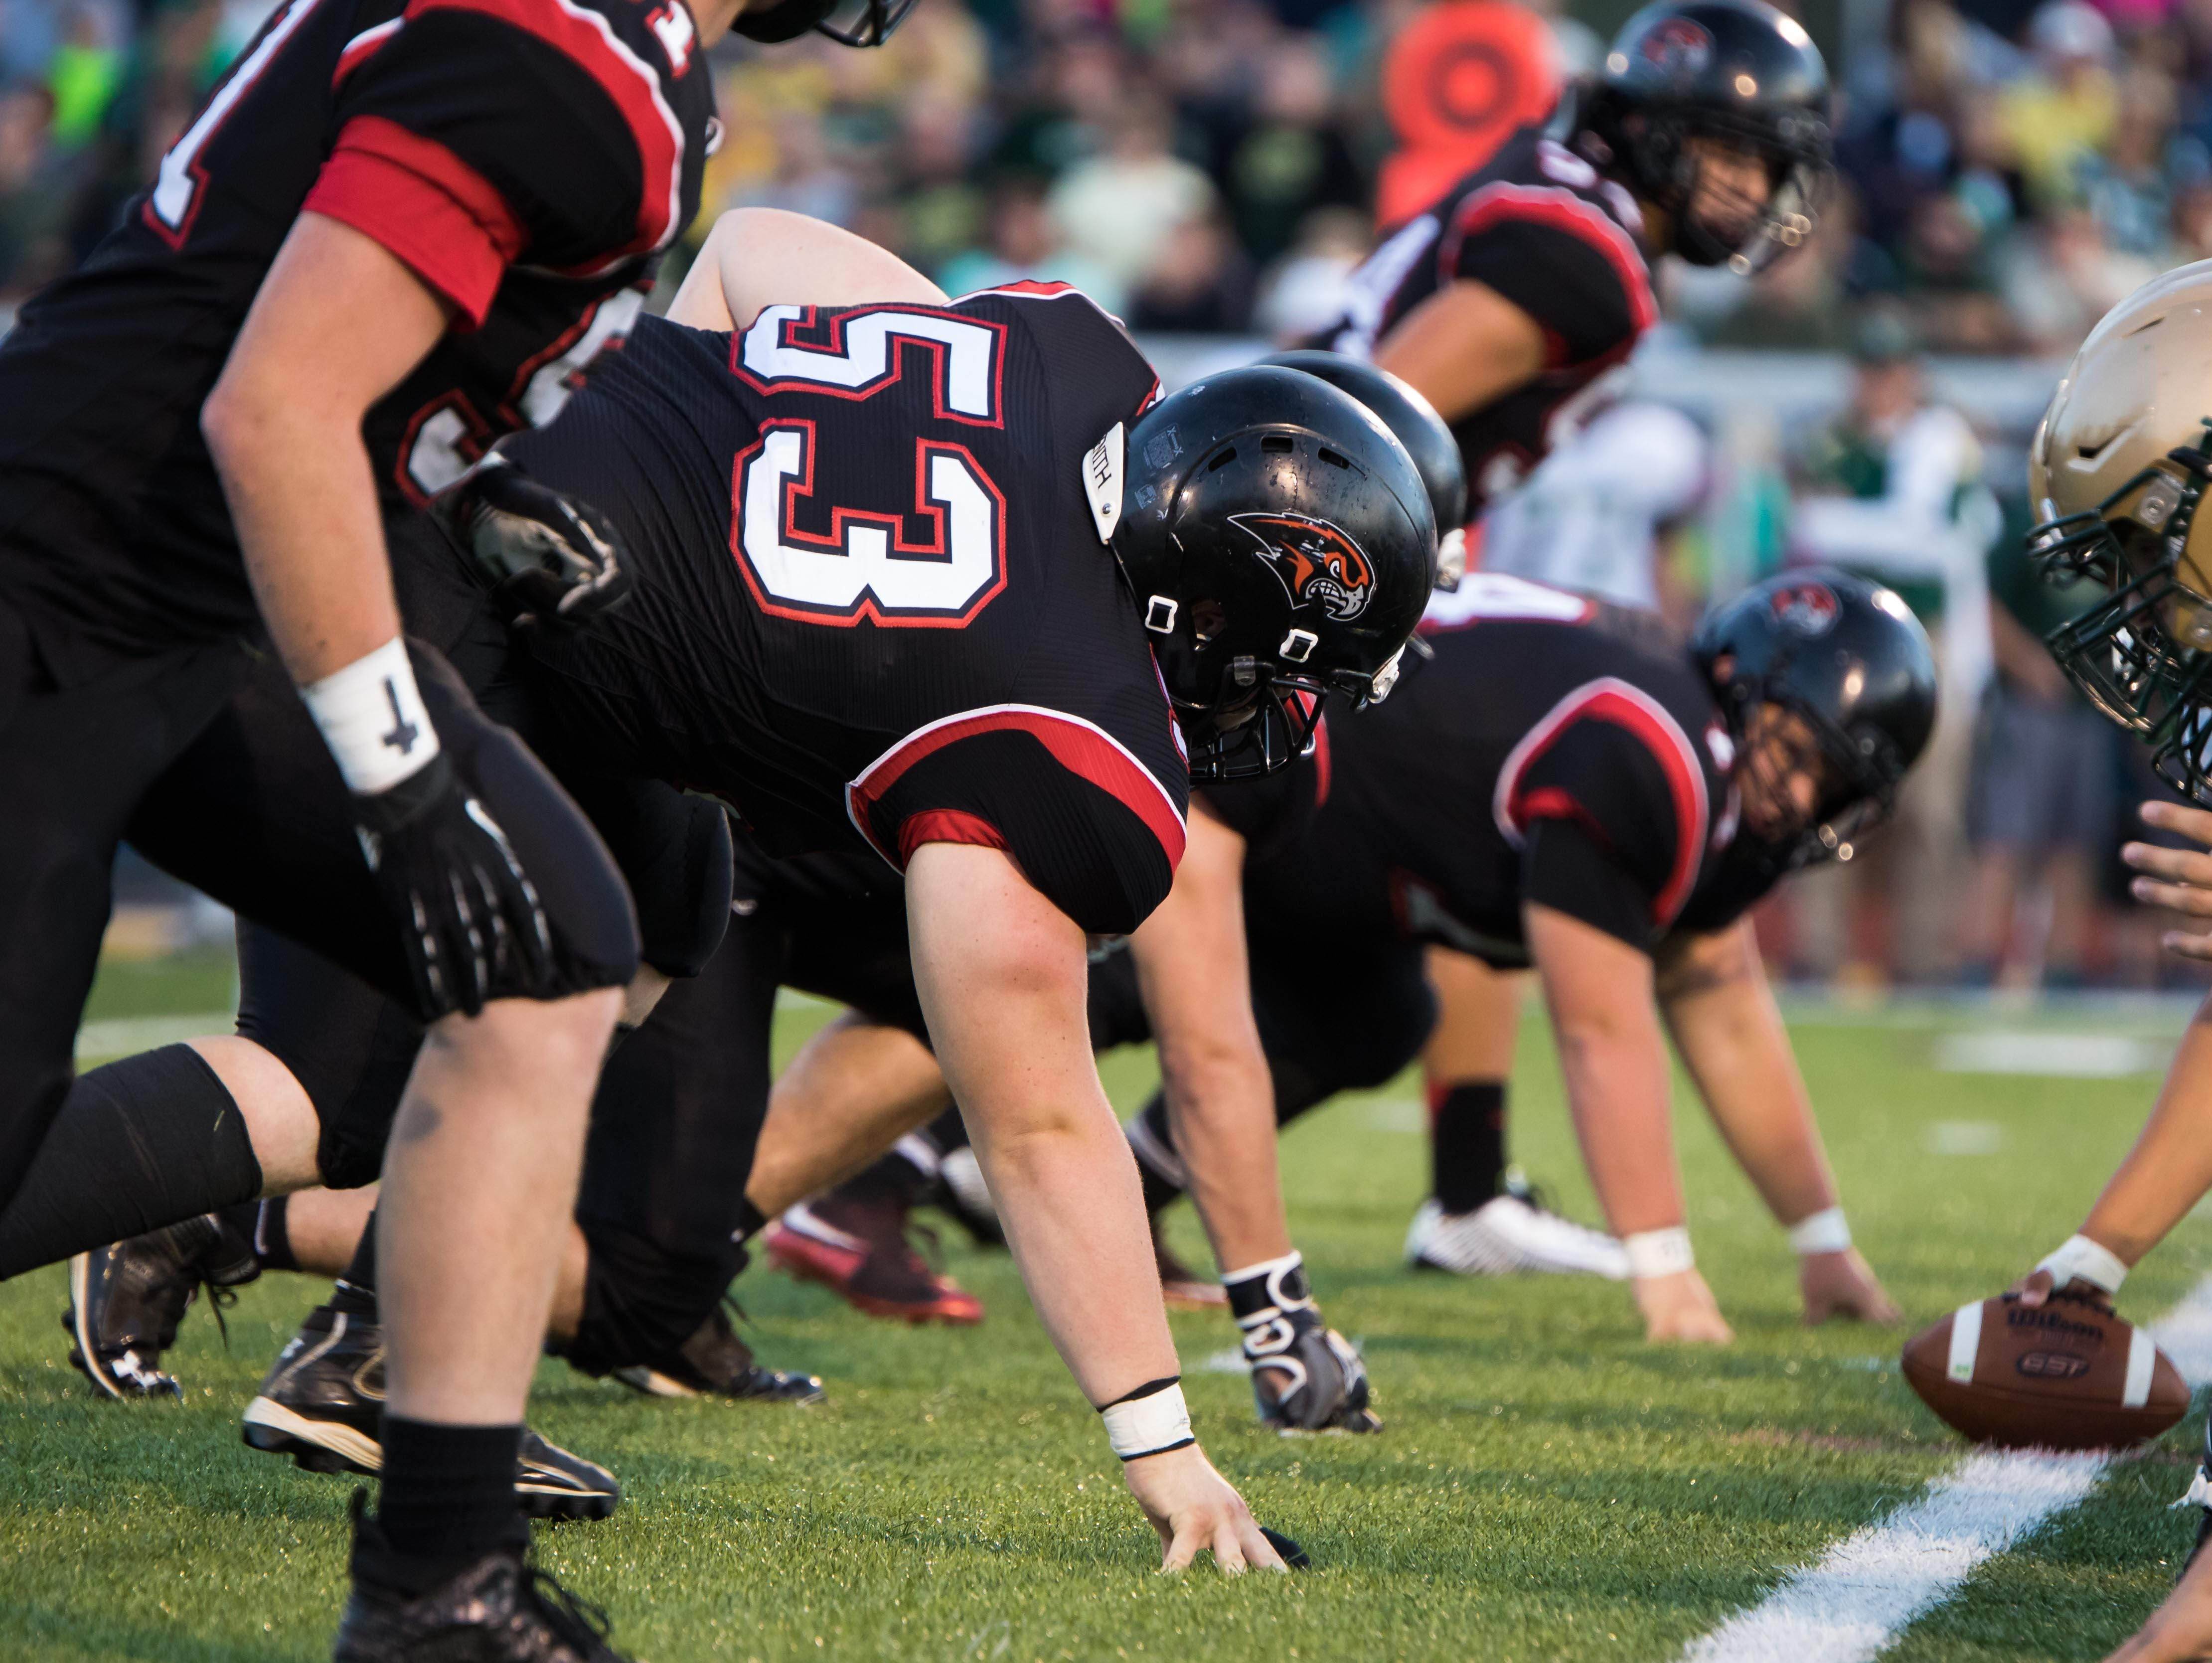 Marshall is one of four local teams recognized in the Michigan Associated Press prep football poll released Tuesday.